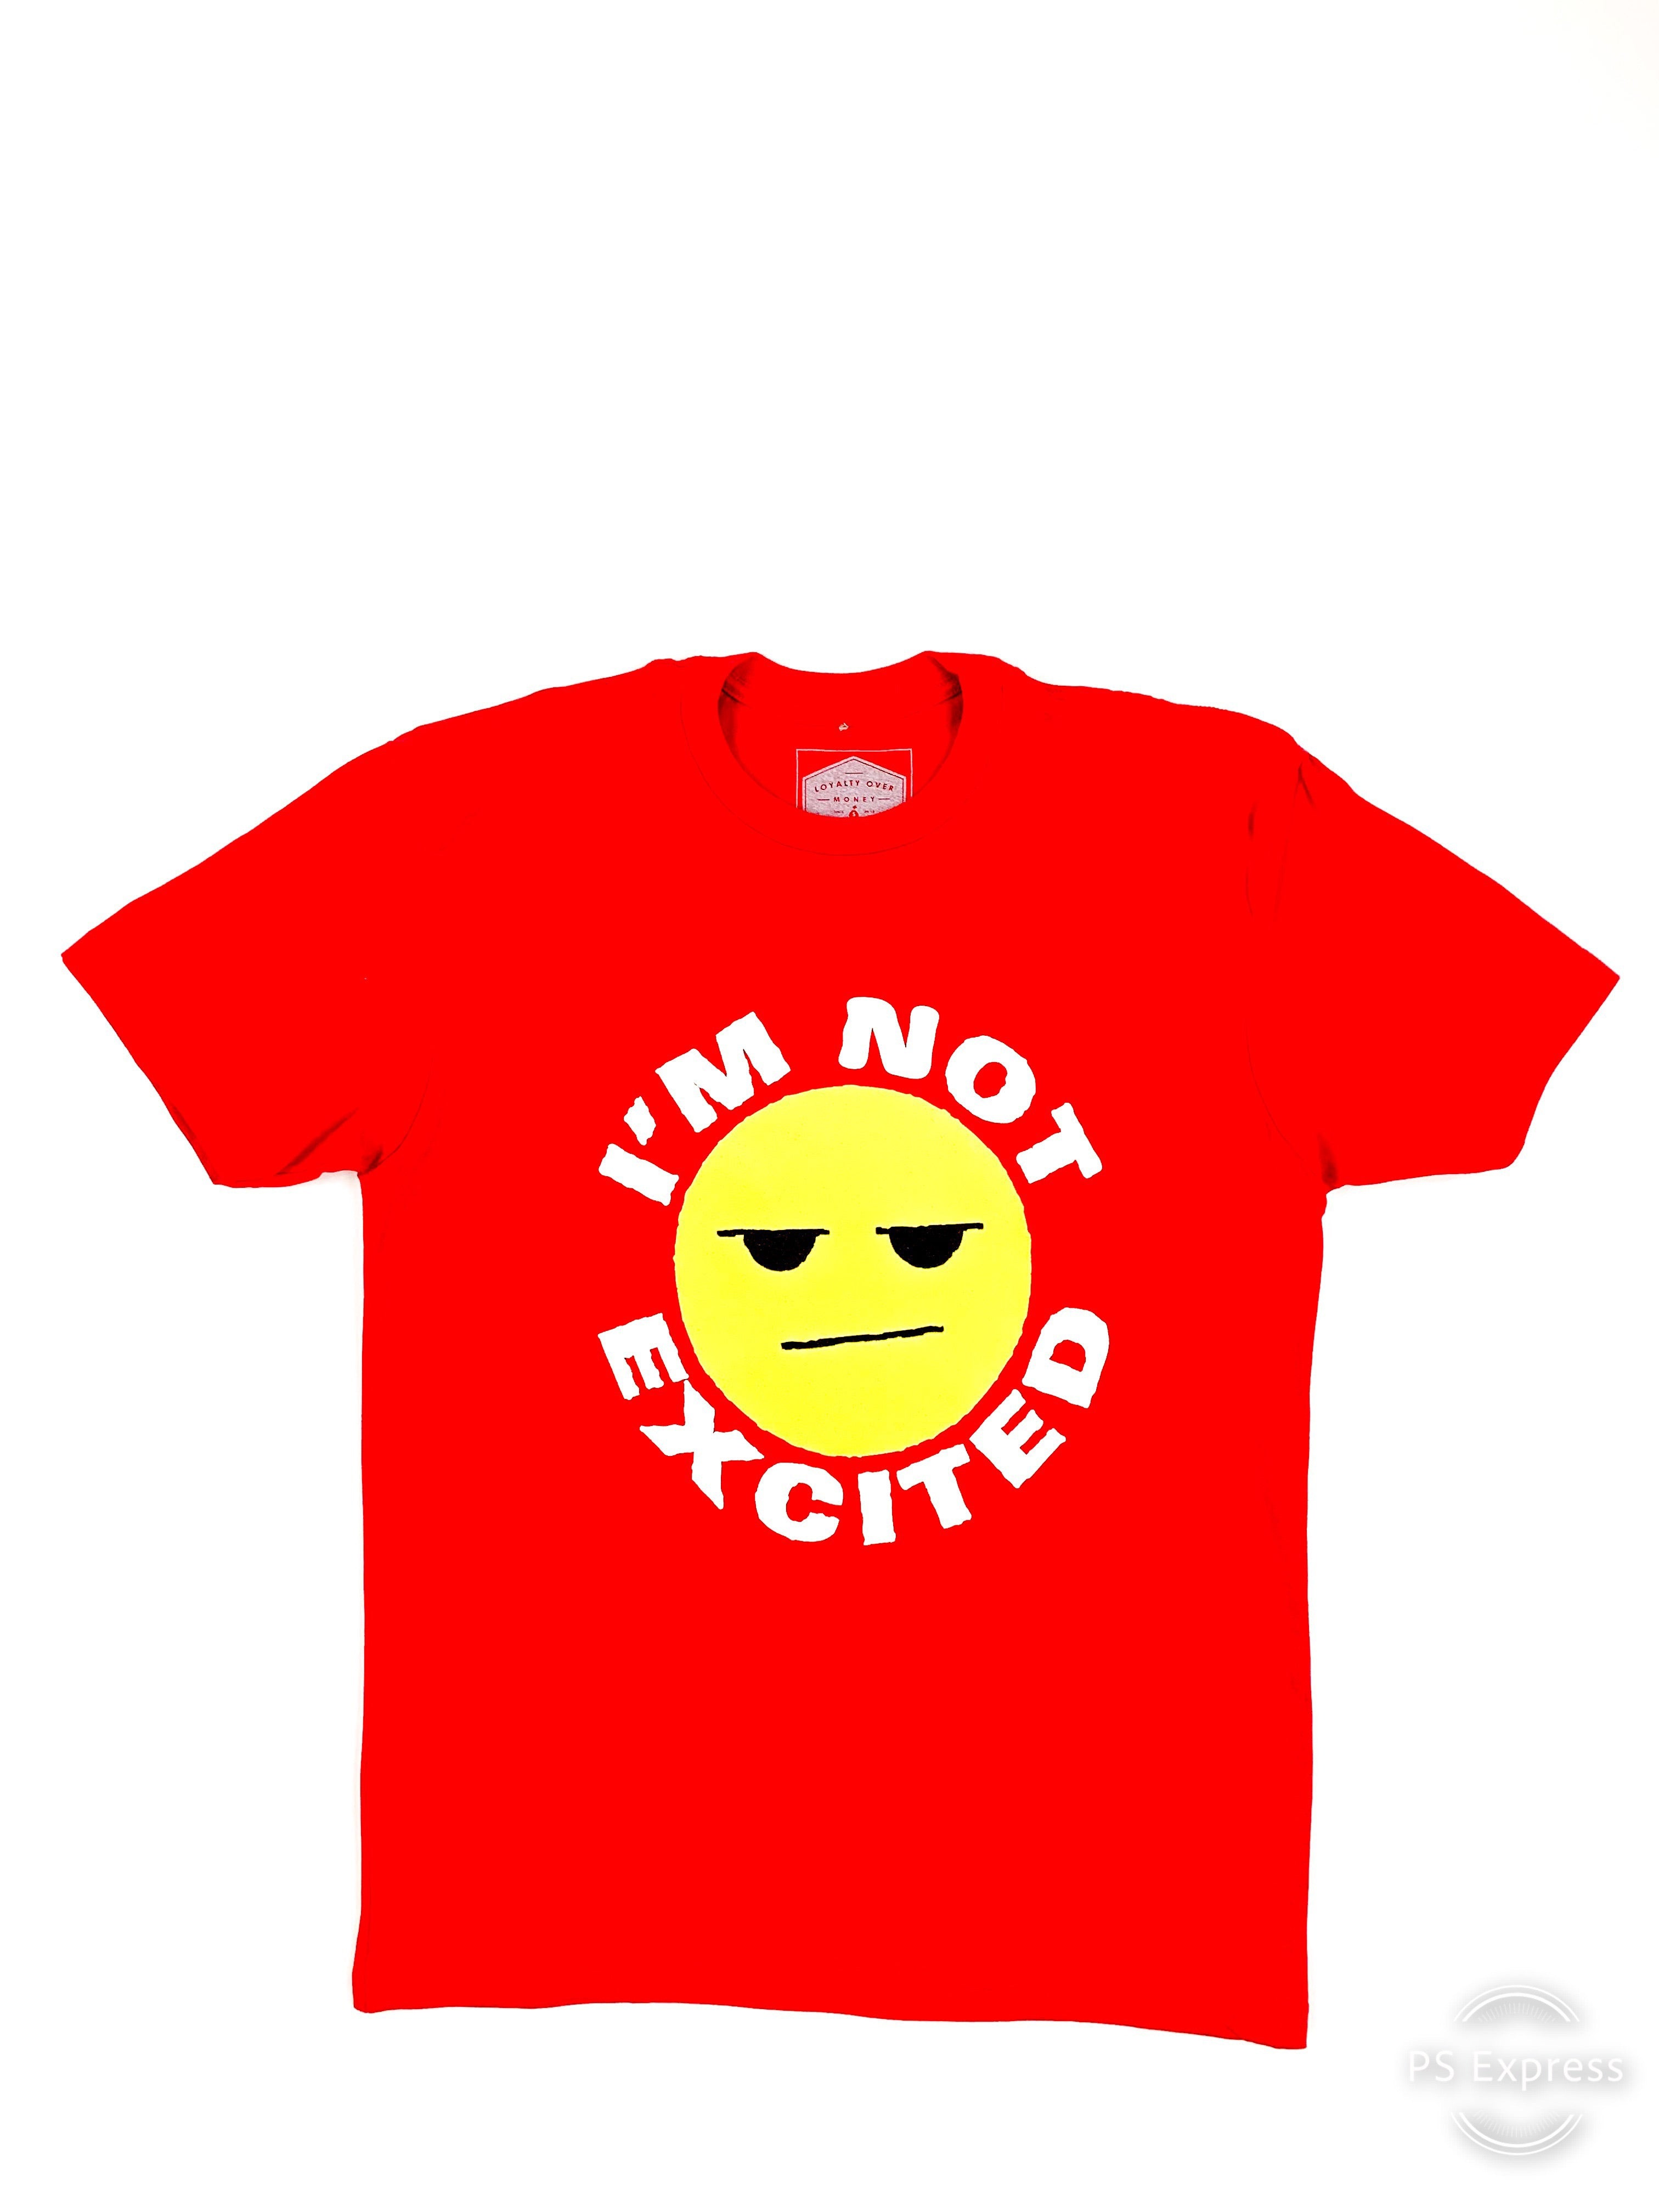 IM NOT EXCITED SHIRTS